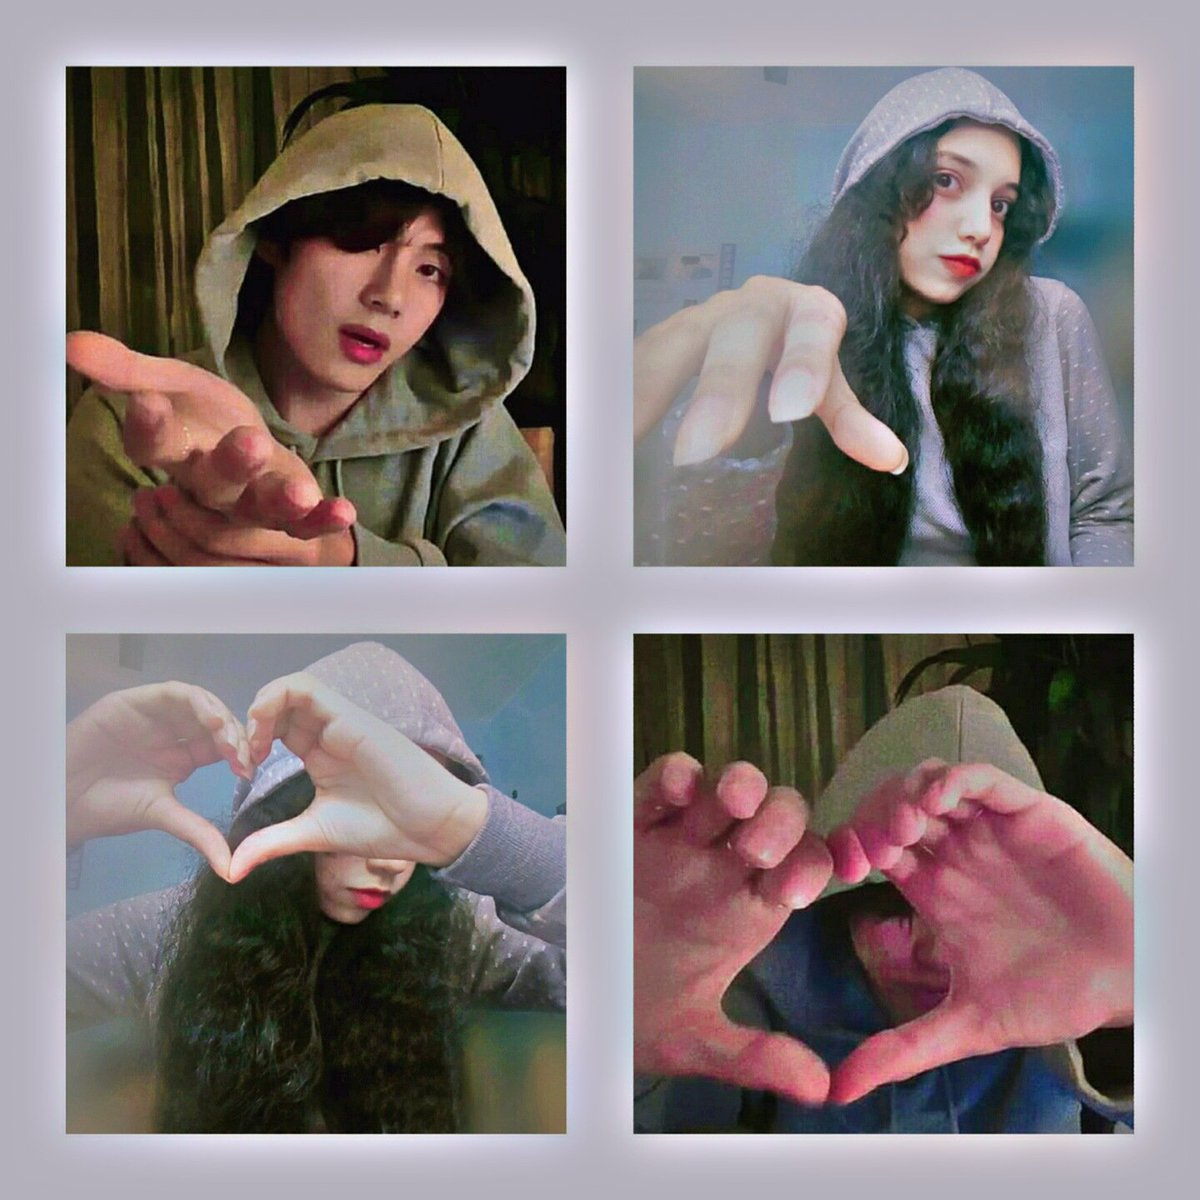 """"""" In other words hold my hand , In other words I LOVE YOU  ! """" #ARMYSelcaDay pic.twitter.com/L0jwC0E0fh"""